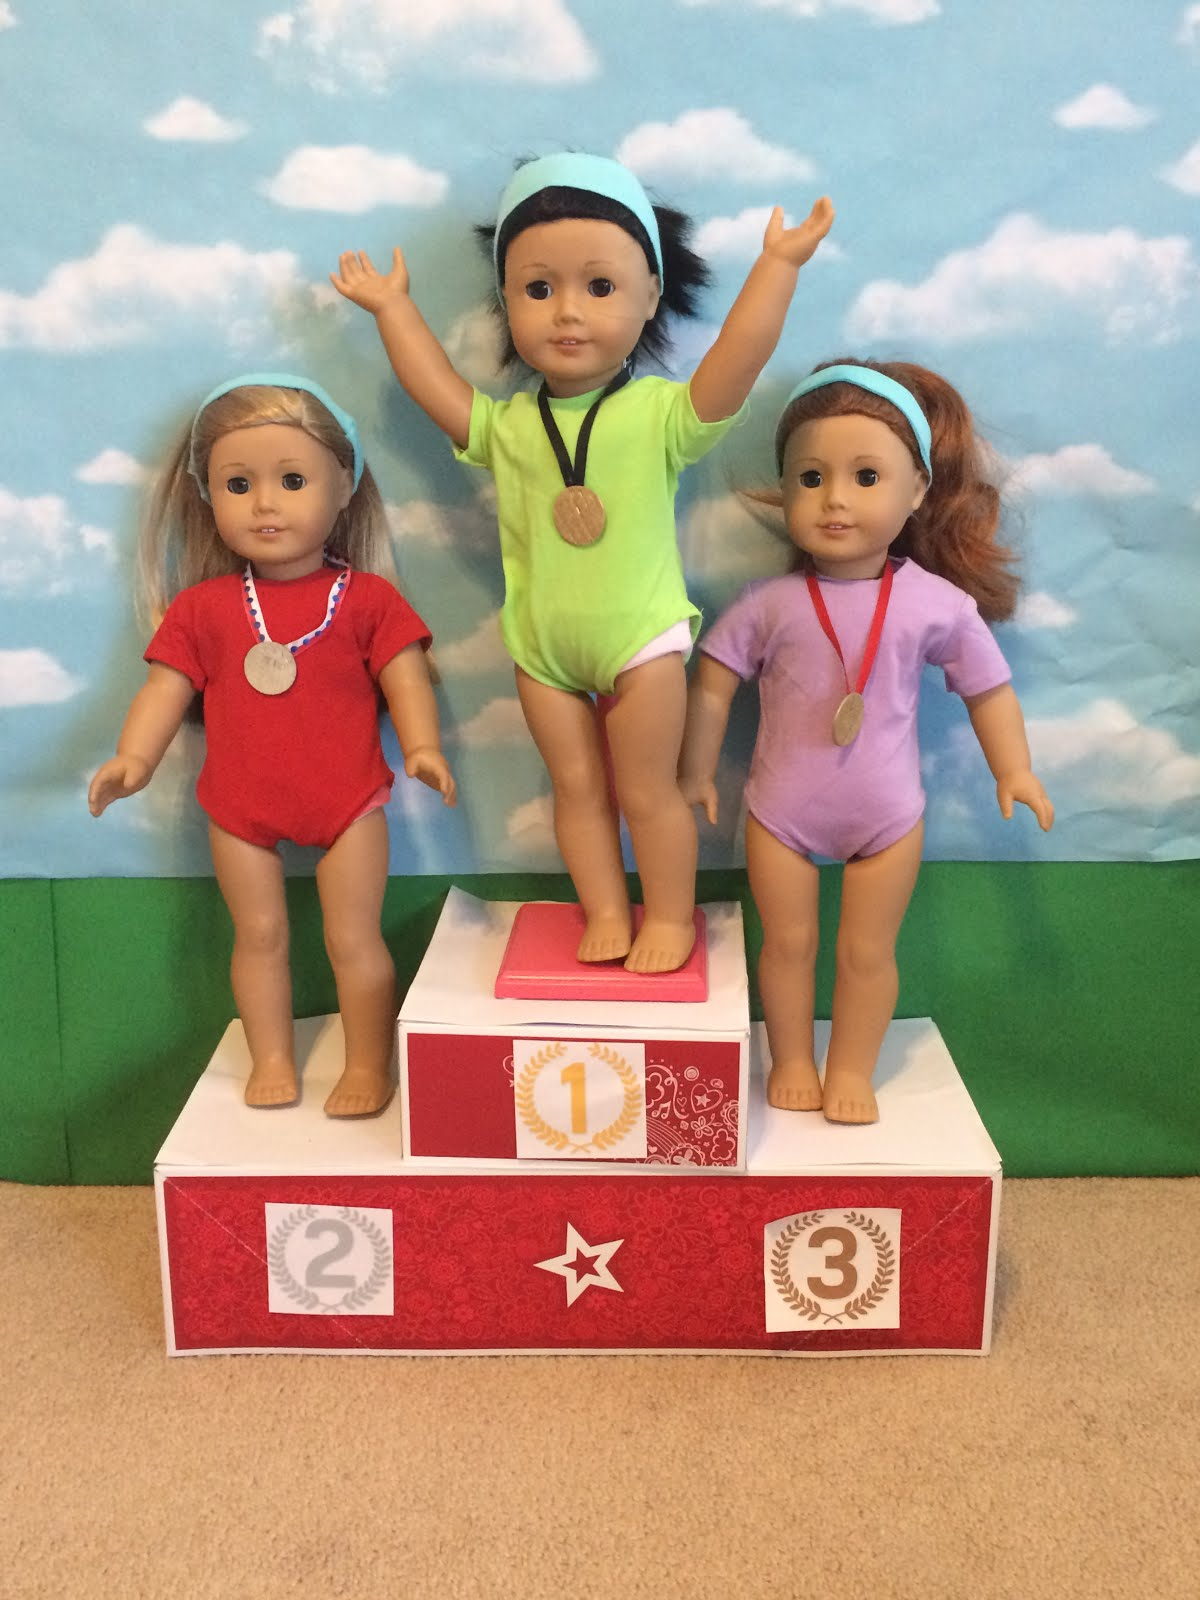 Winning at the Olympics Doll Maker Camp!